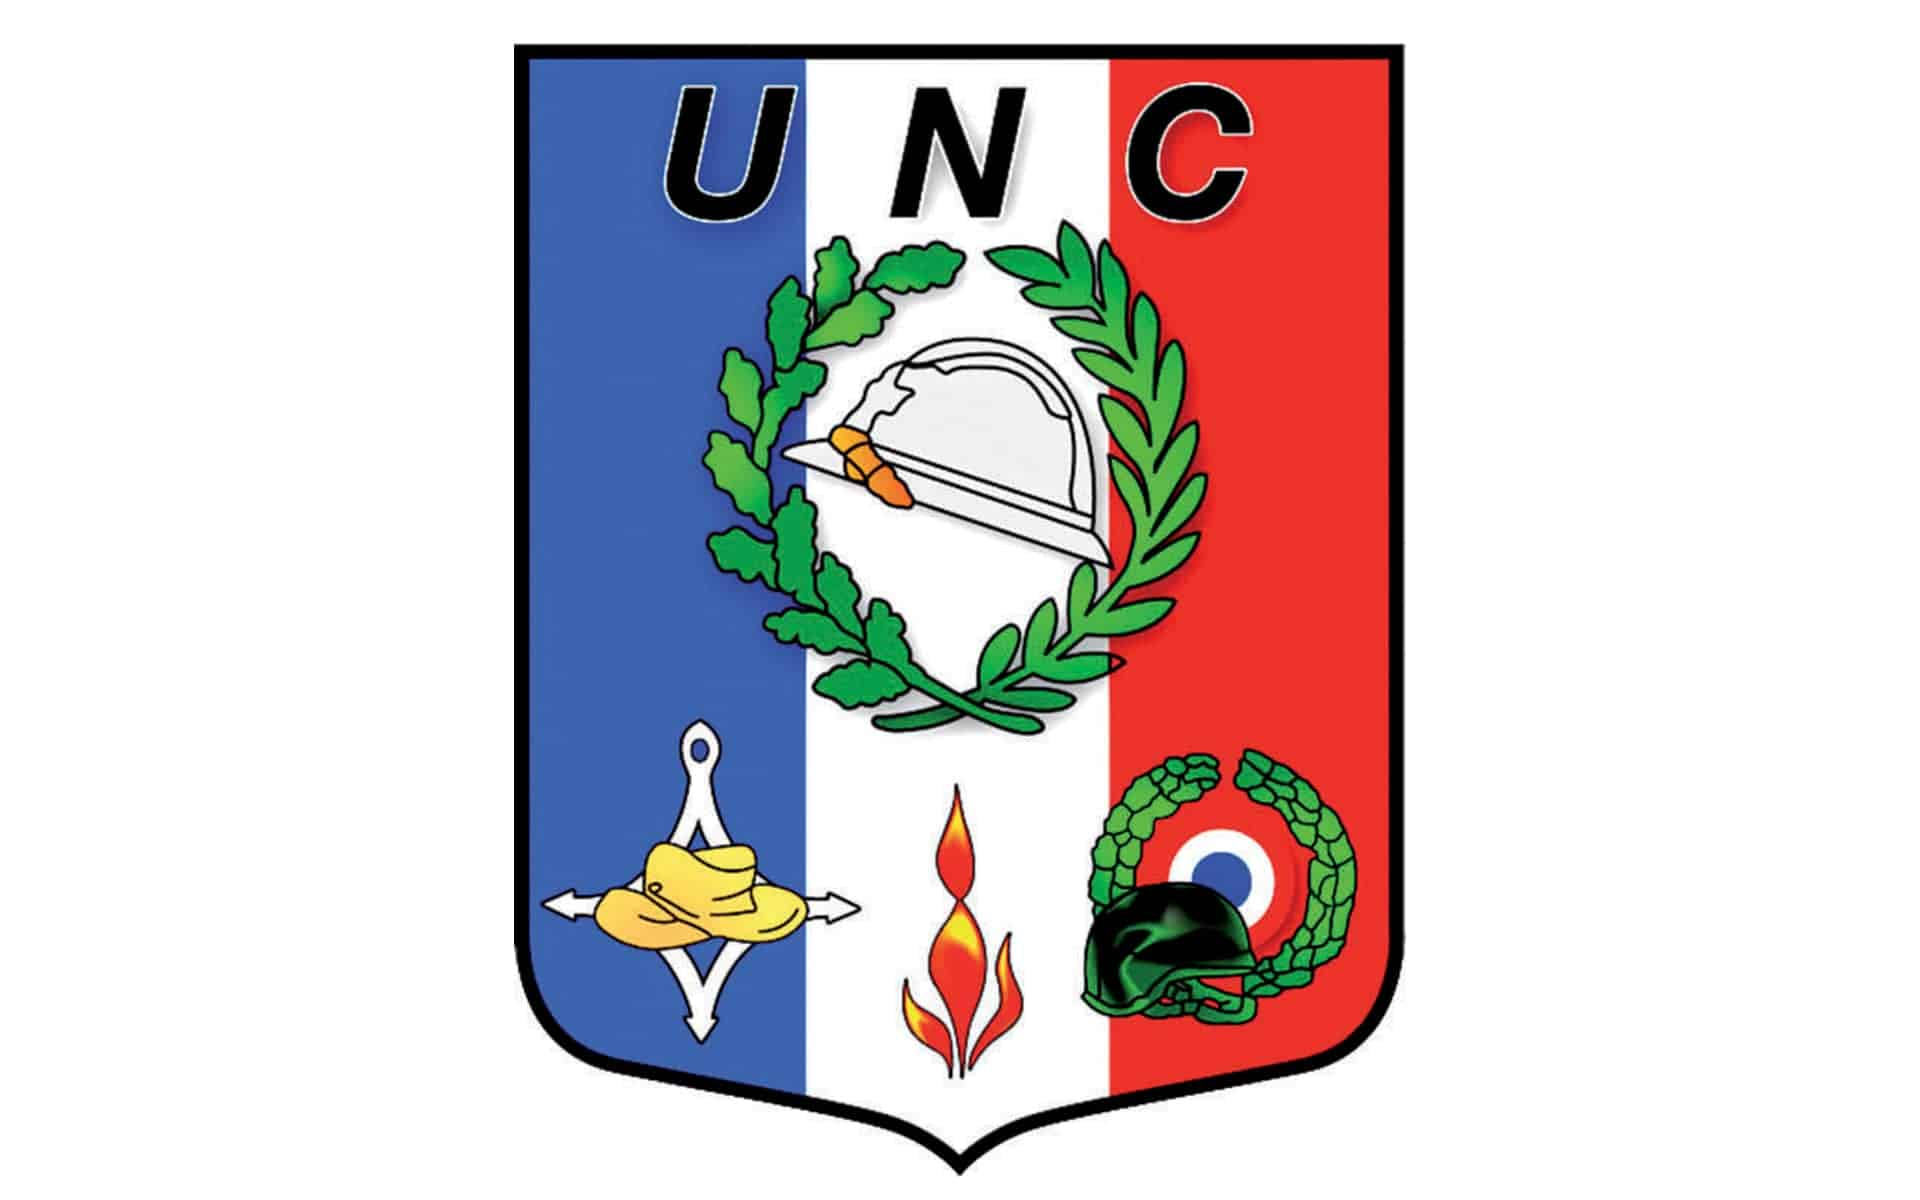 UNION NATIONALE DES ANCIENS COMBATTANTS (UNC)